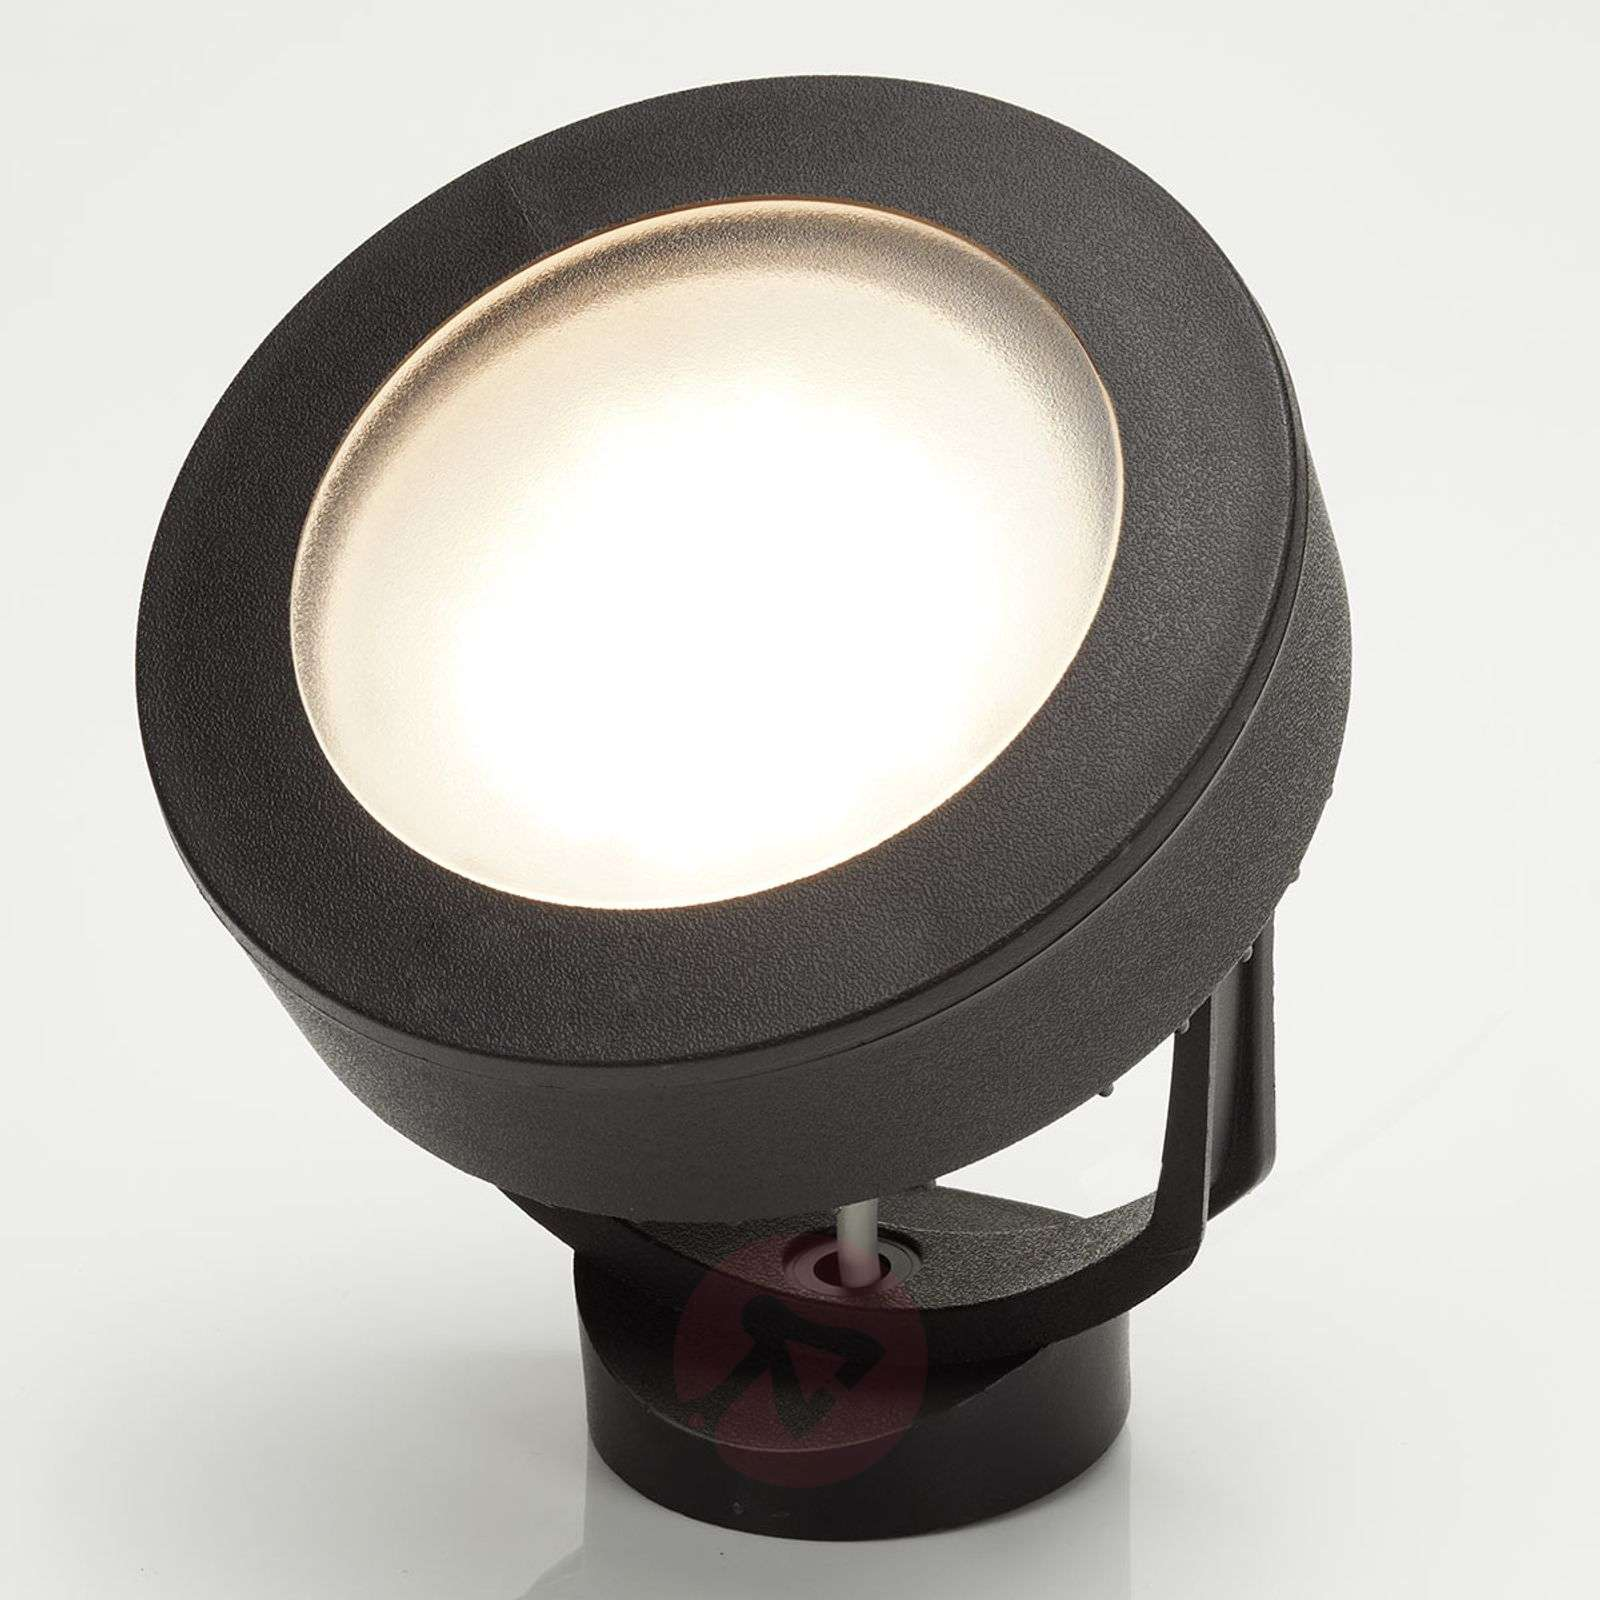 LED outdoor spotlight Tommy 10 W warm white, black-3538089-01